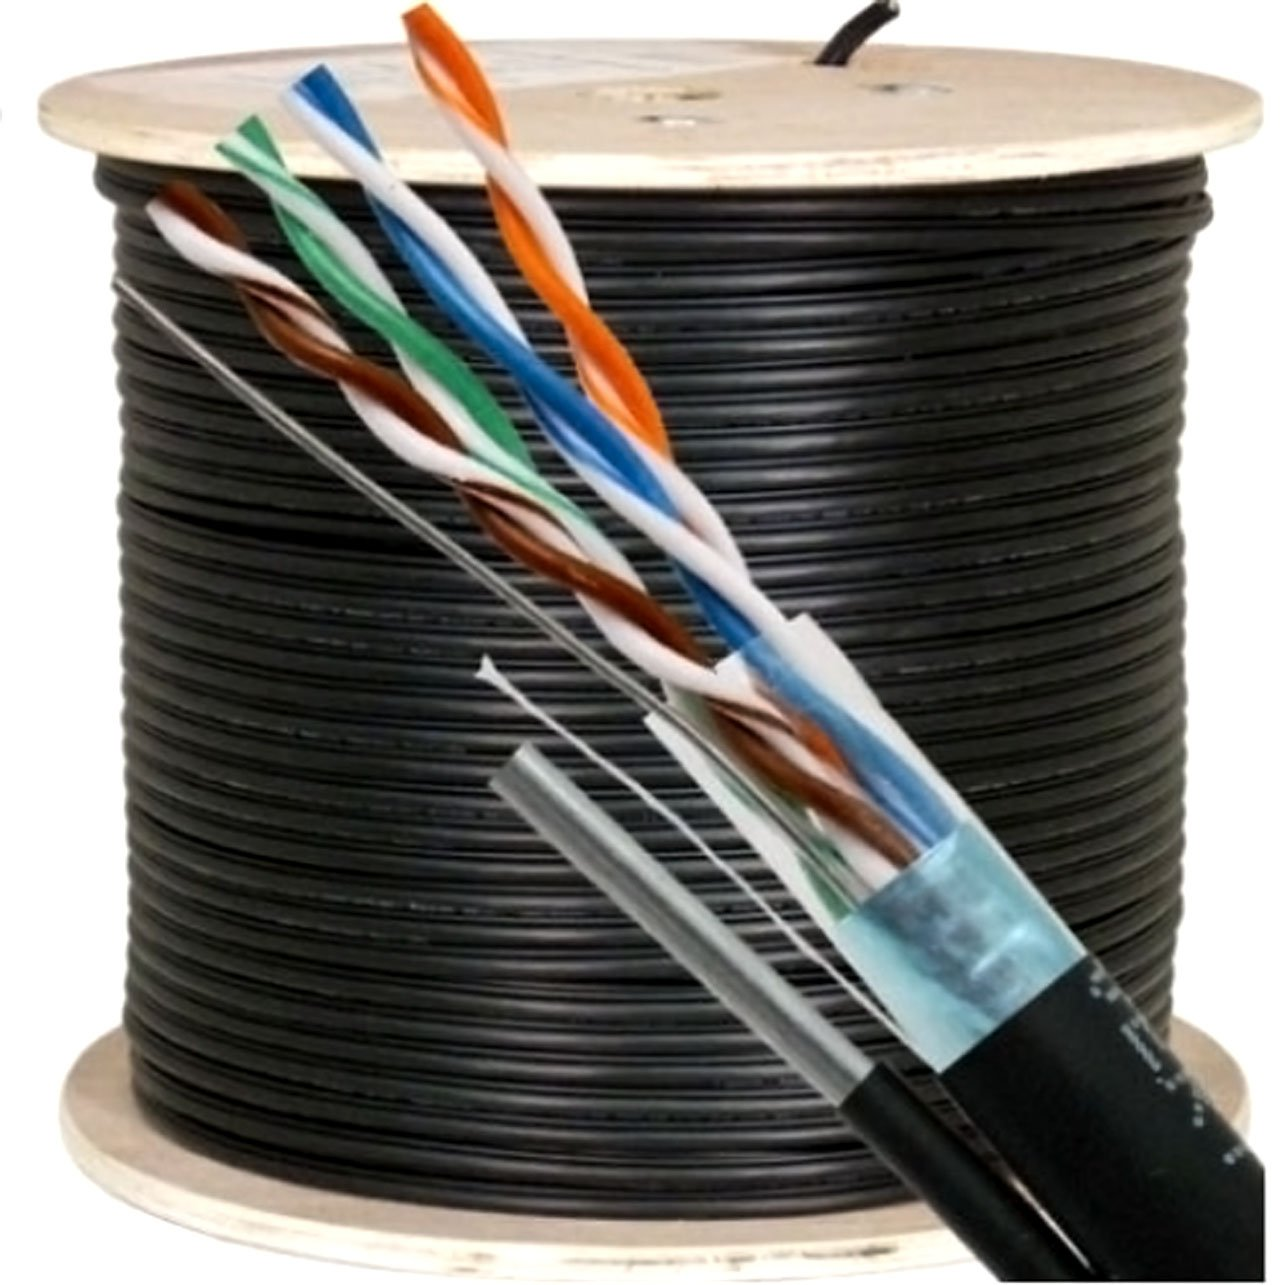 Vertical Cable Cat5e, 350 Mhz, Shielded, UV Jacket, Outdoor, CMX, Messenger, 1000ft, Black, Bulk Ethernet Cable, Wooden Spool by VC VERTICAL CABLE